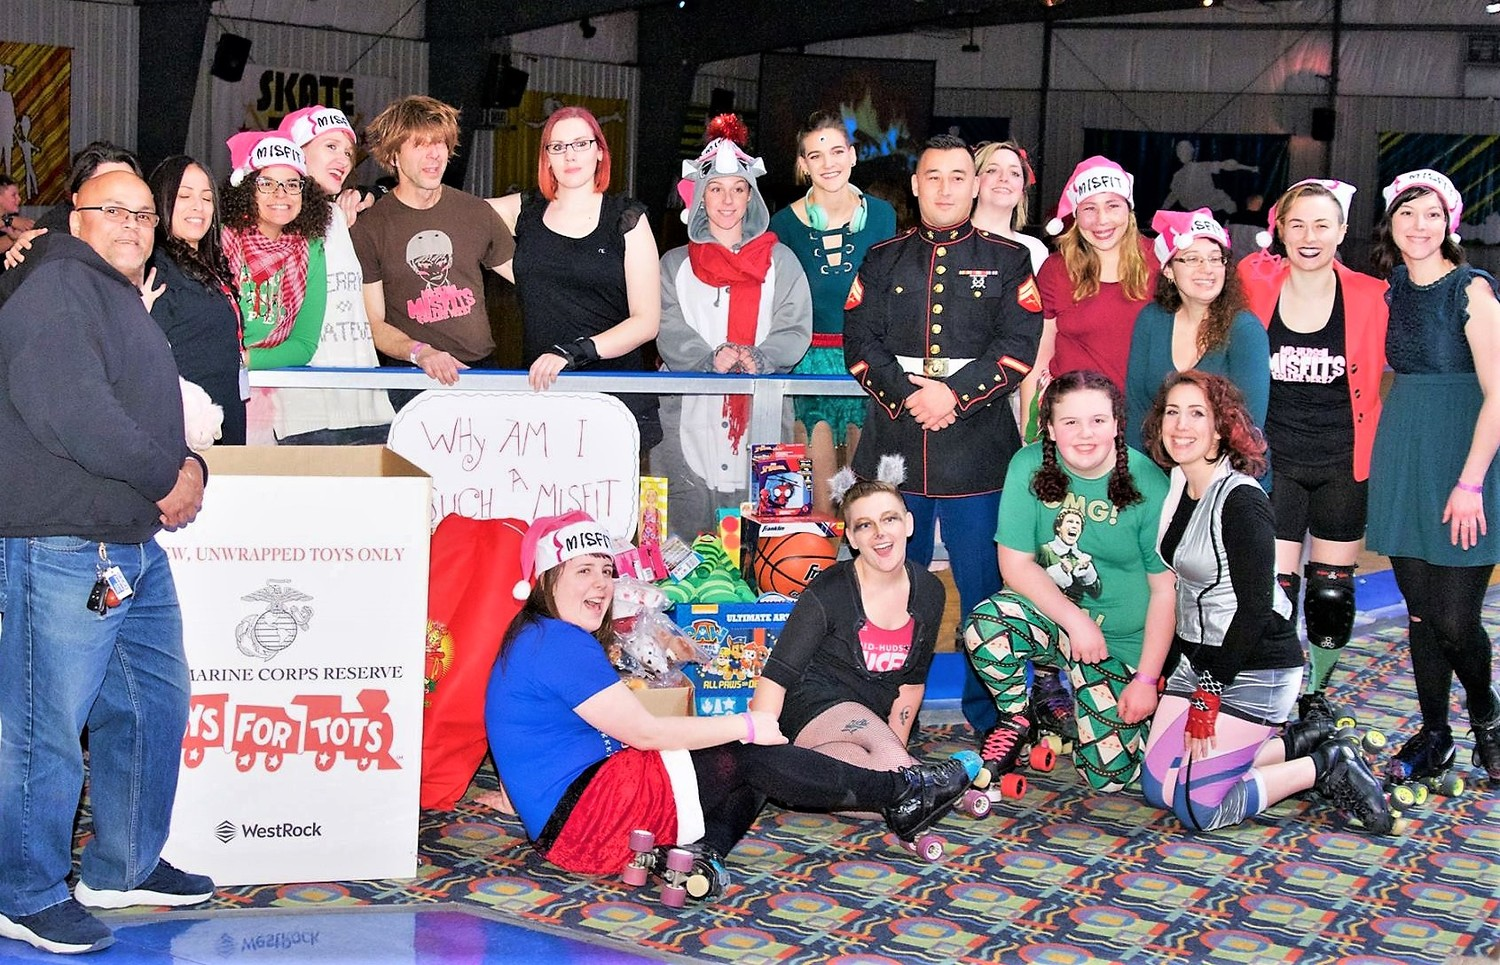 Mid-Hudson Misfits at the Dec. 8 bout, which collected 130 toys for Toys for Tots.